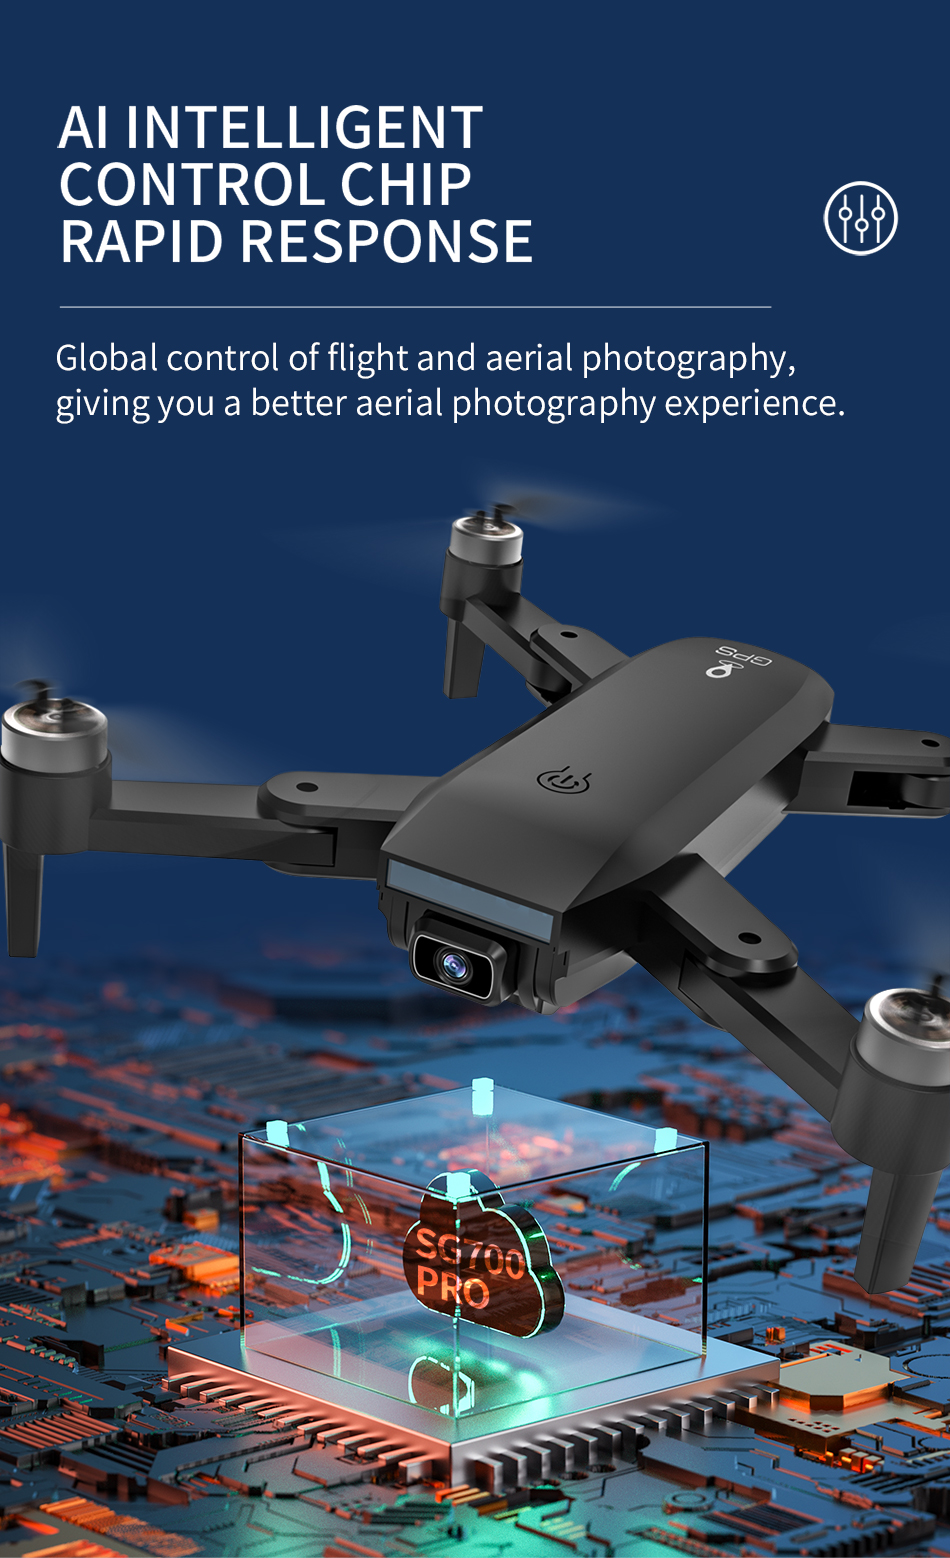 H58fab301e1f547afb778f7bb1c8ac6d8q - ZLL SG700 MAX Drone GPS 5G WiFi Dual Camera Brushless Motor Flight RC Distance 800m SG700 Pro Foldable Professional Quadcopter